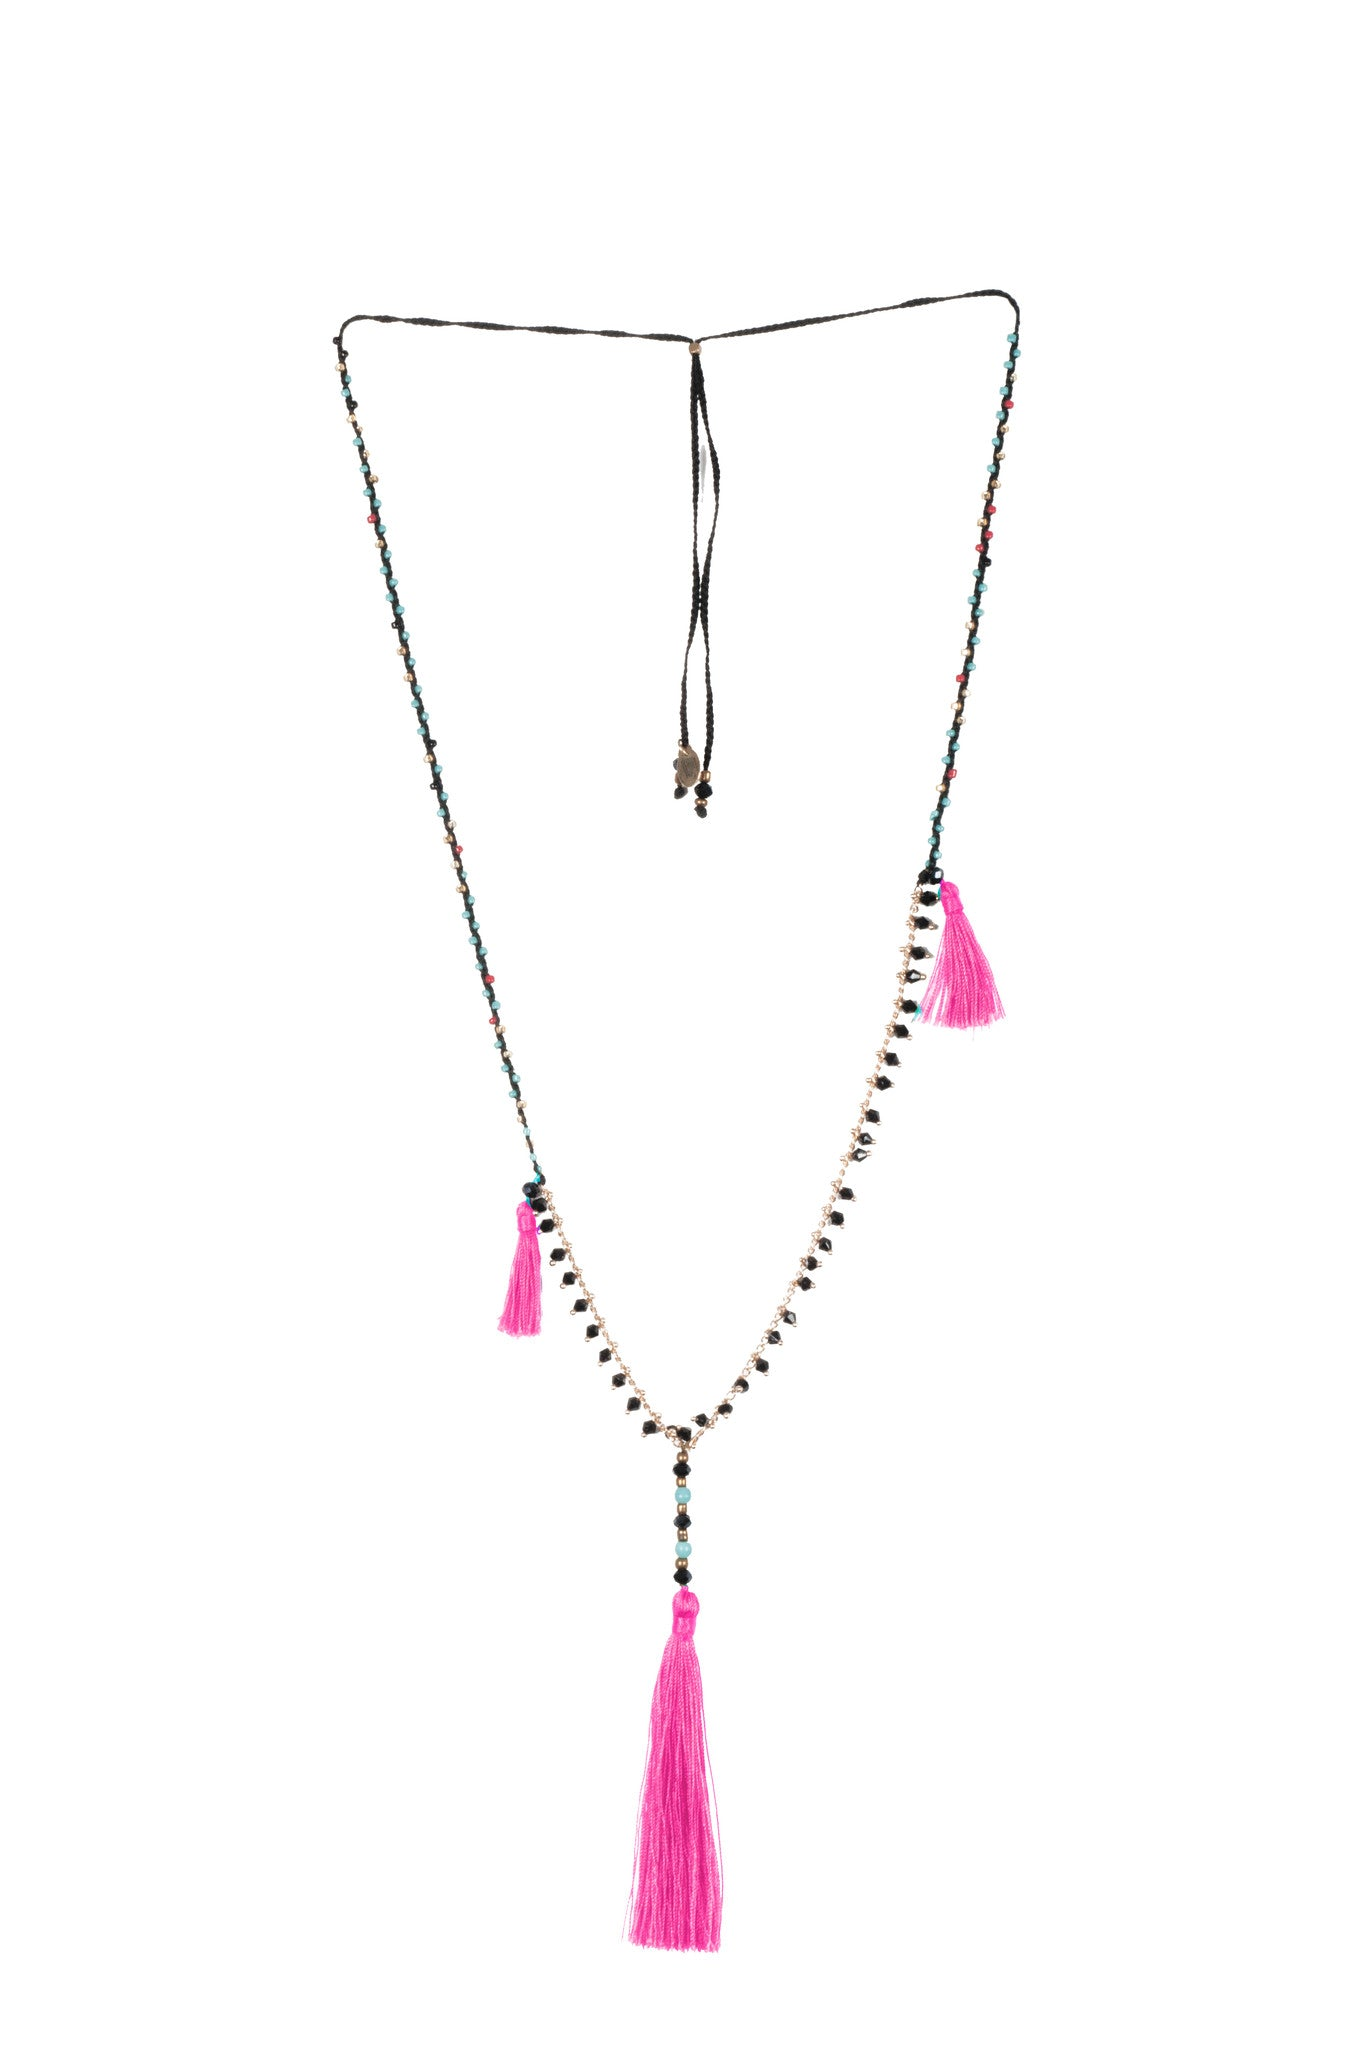 Neon Pink Adjustable Necklace made of delicate crystal pearls, Copper chain completed by three vibrant nylon tassels